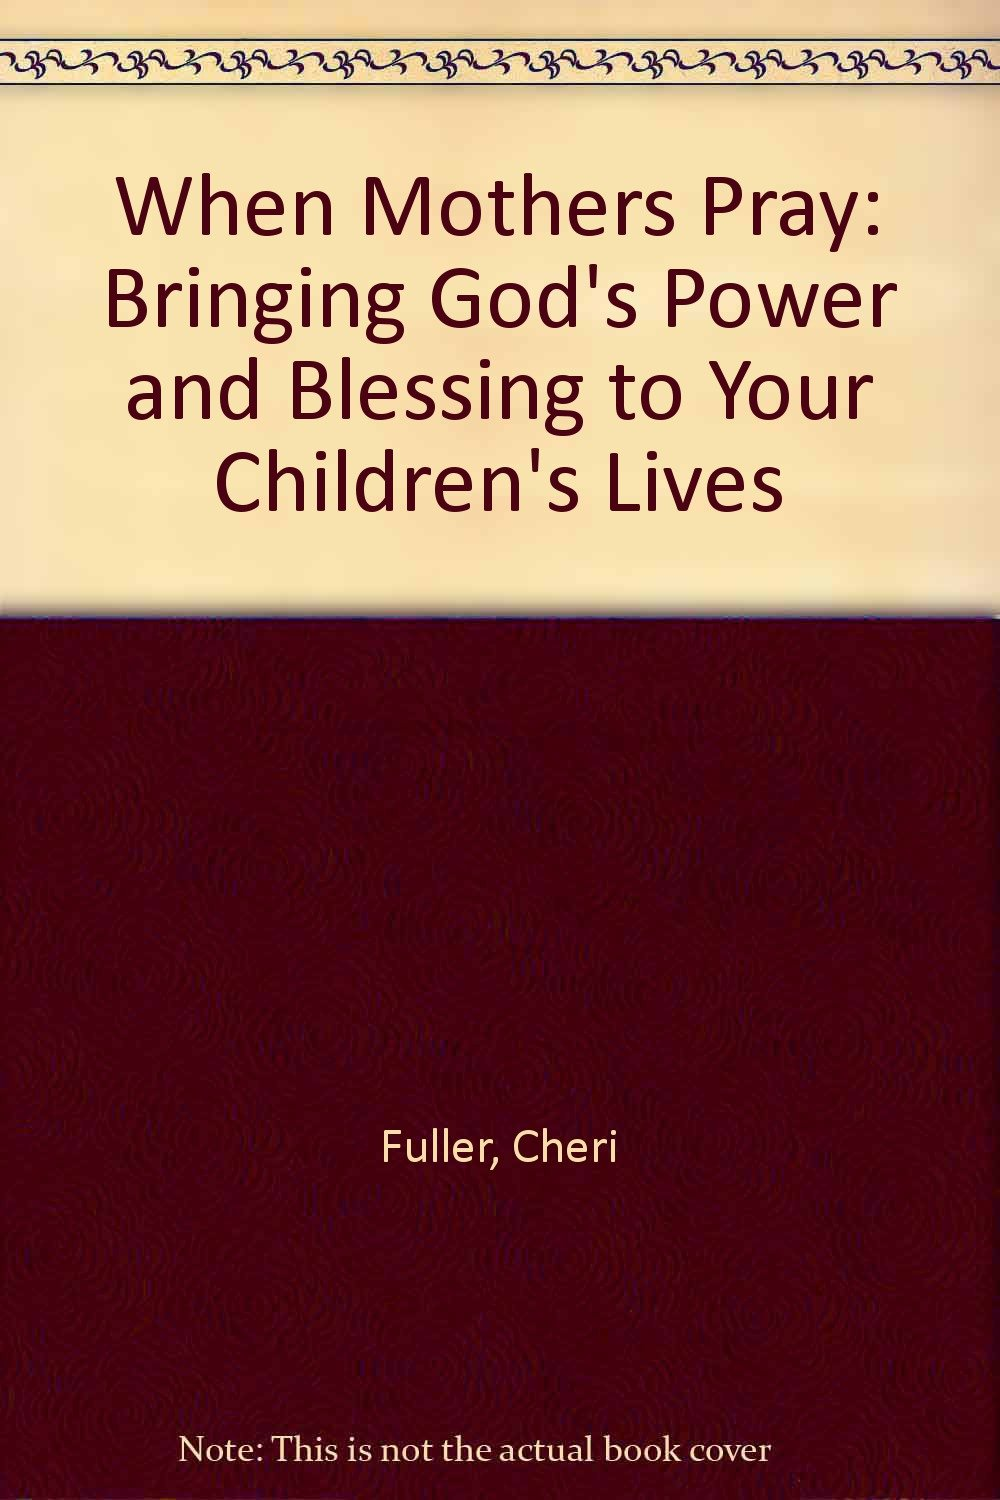 Download When Mothers Pray: Bringing God's Power and Blessing to Your Children's Lives ebook